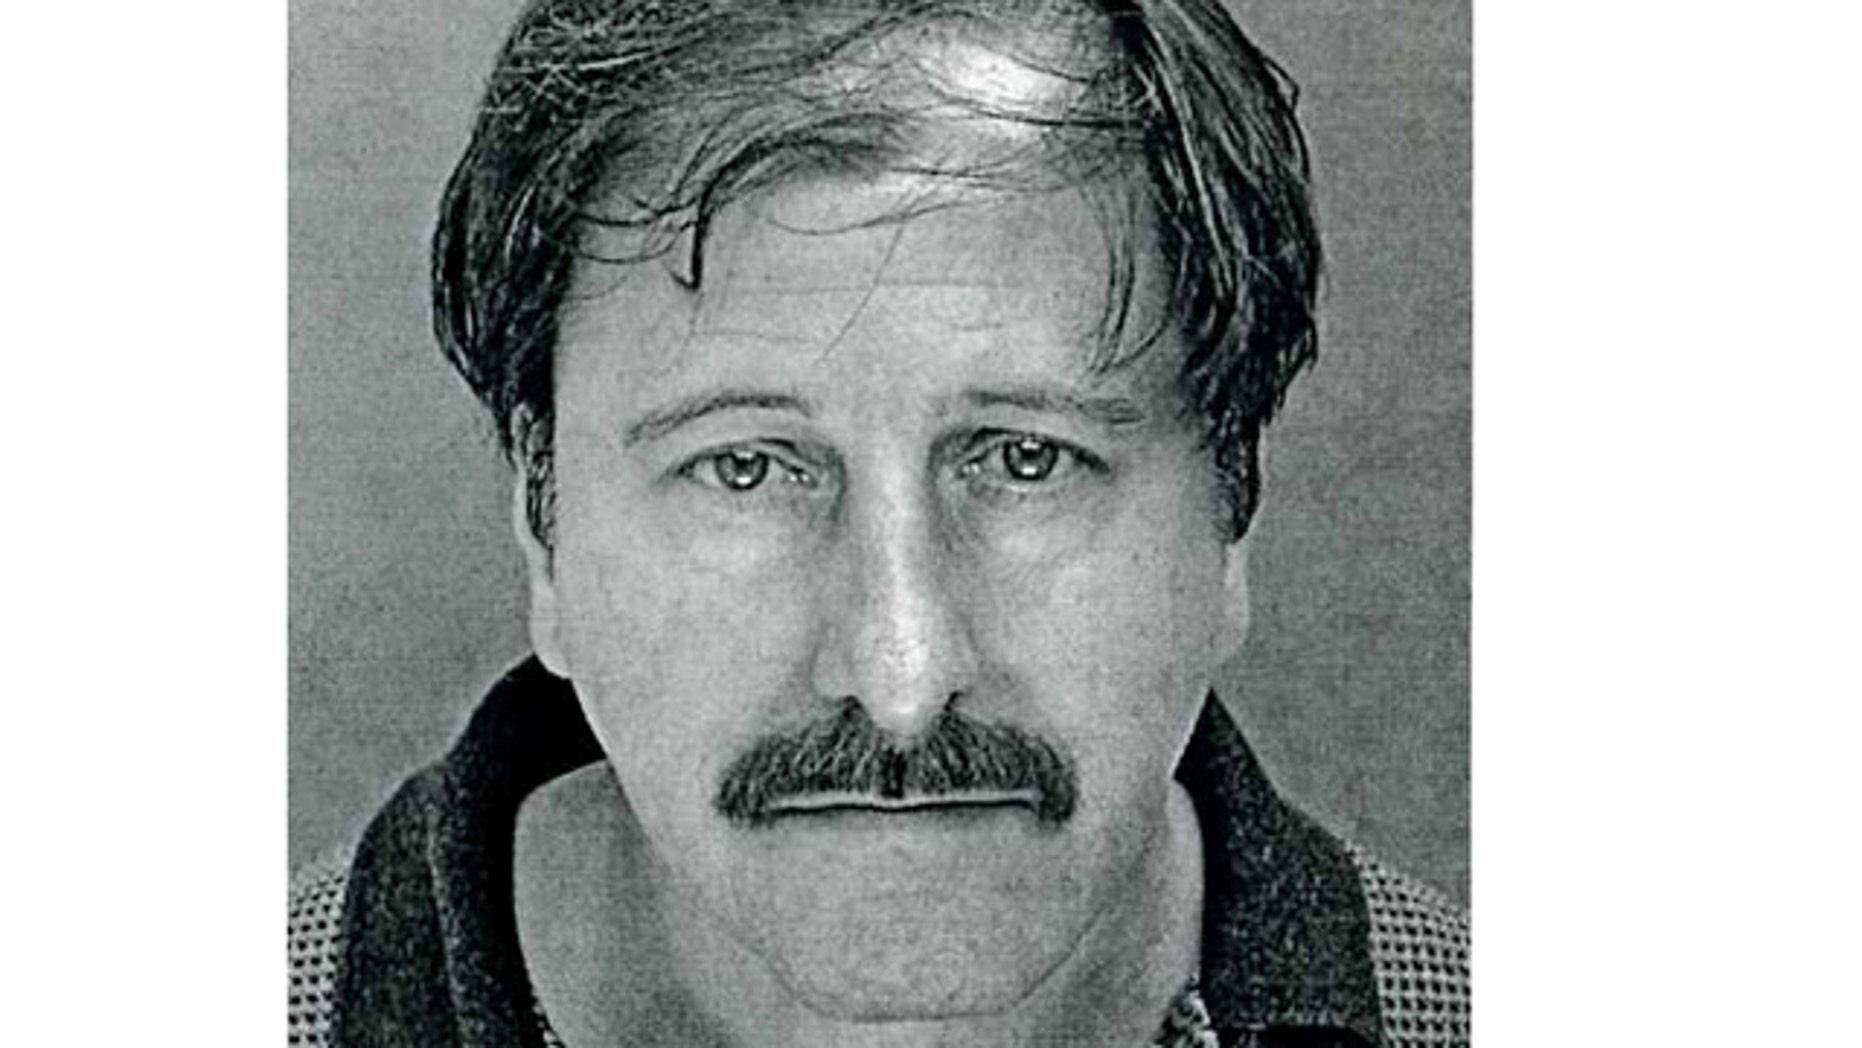 2001: In this photo provided by the Franconia Township Police Department in Telford, Pa, Salvatore Perrone is shown.